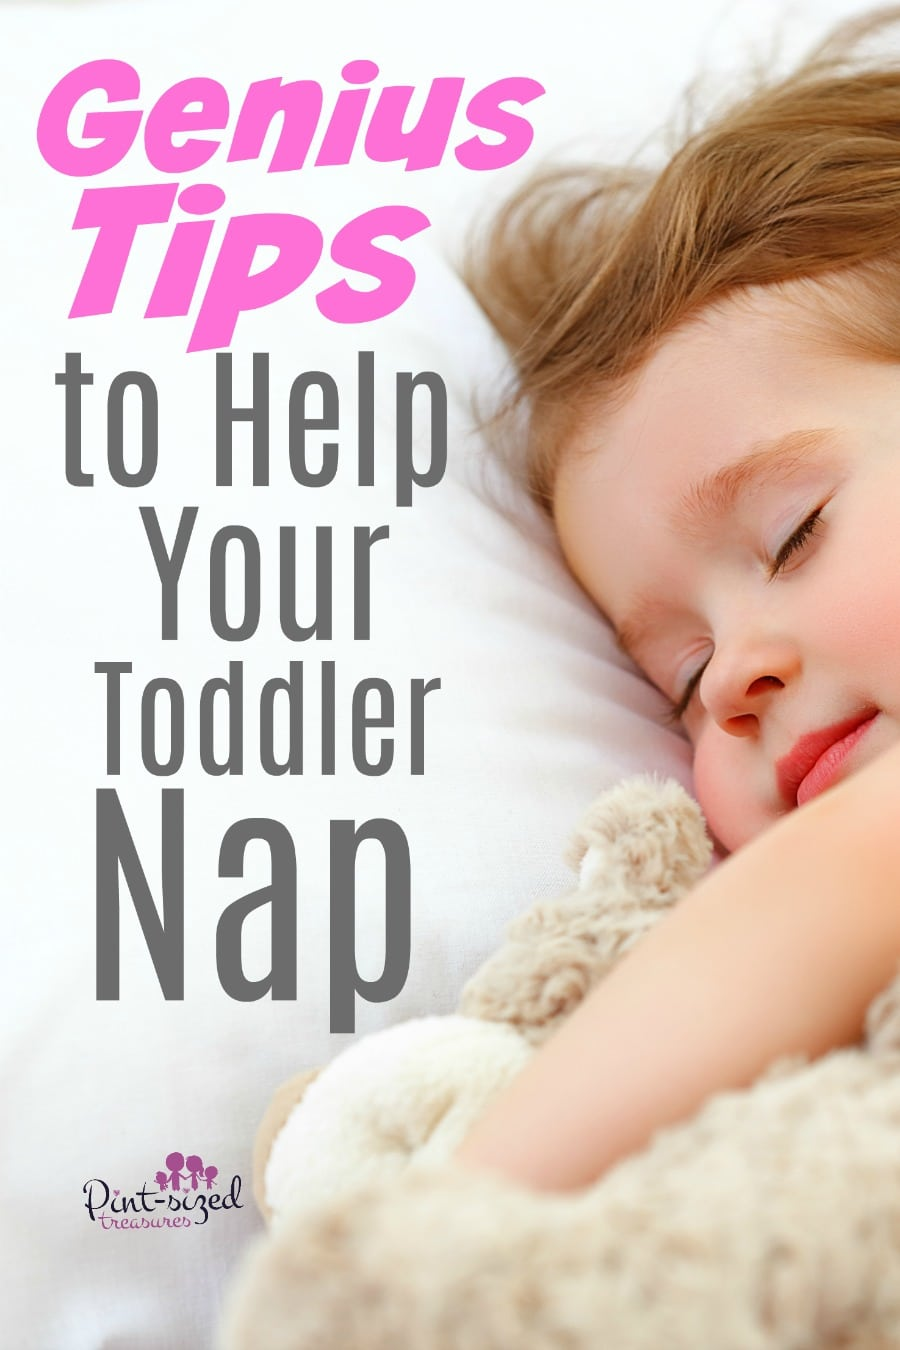 genius tips to help toddlers nap